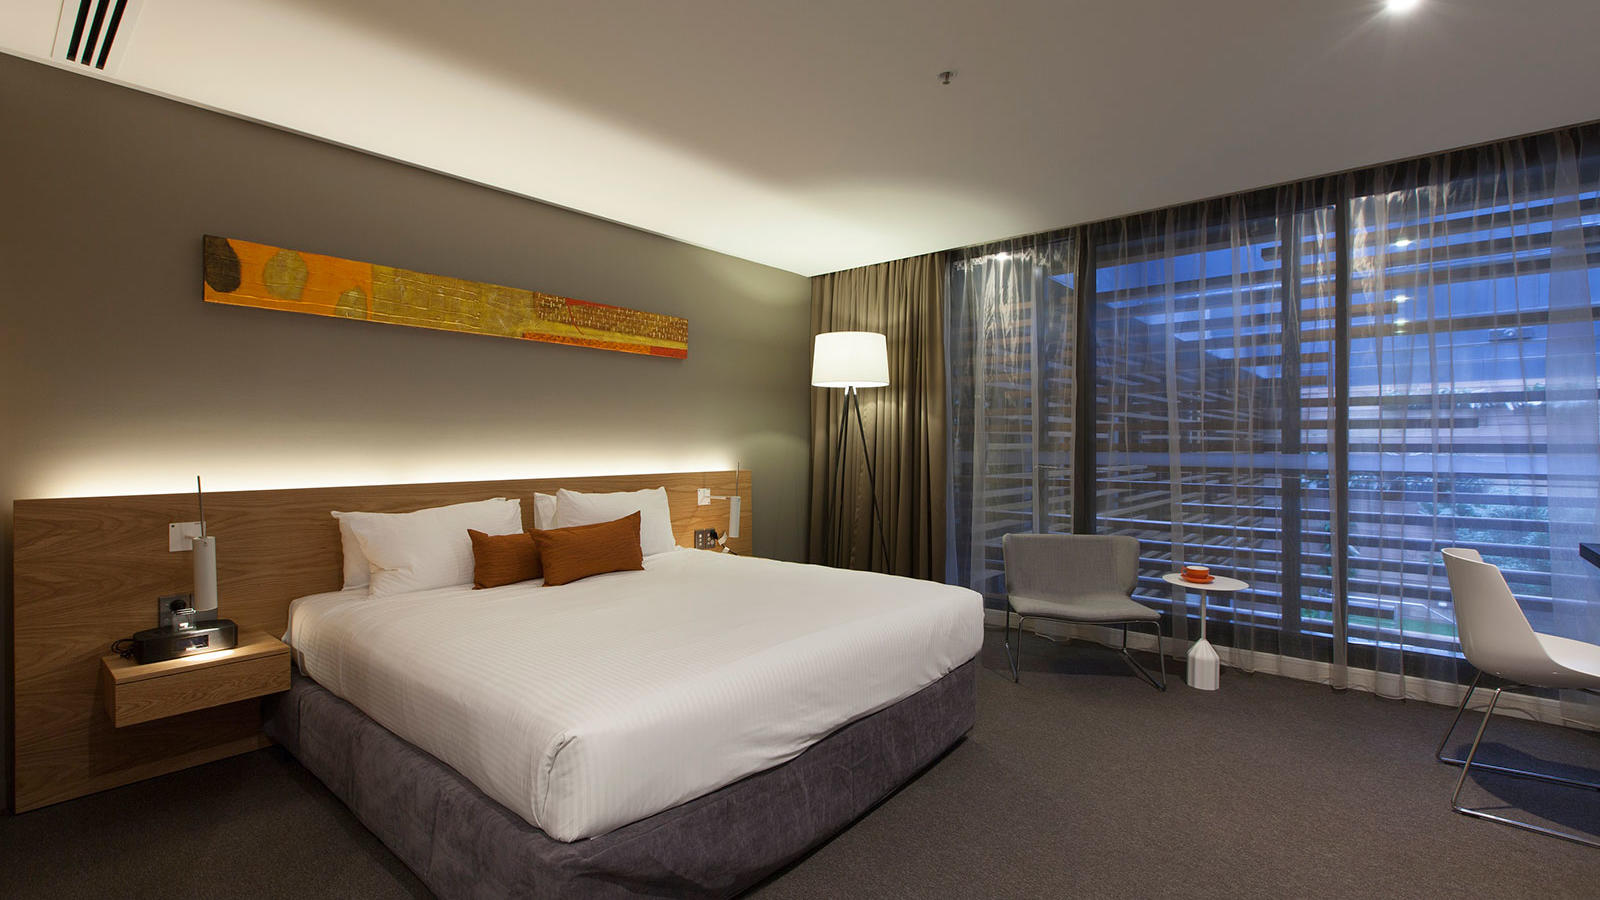 Premium Courtyard View Room at Jasper Hotel Melbourne